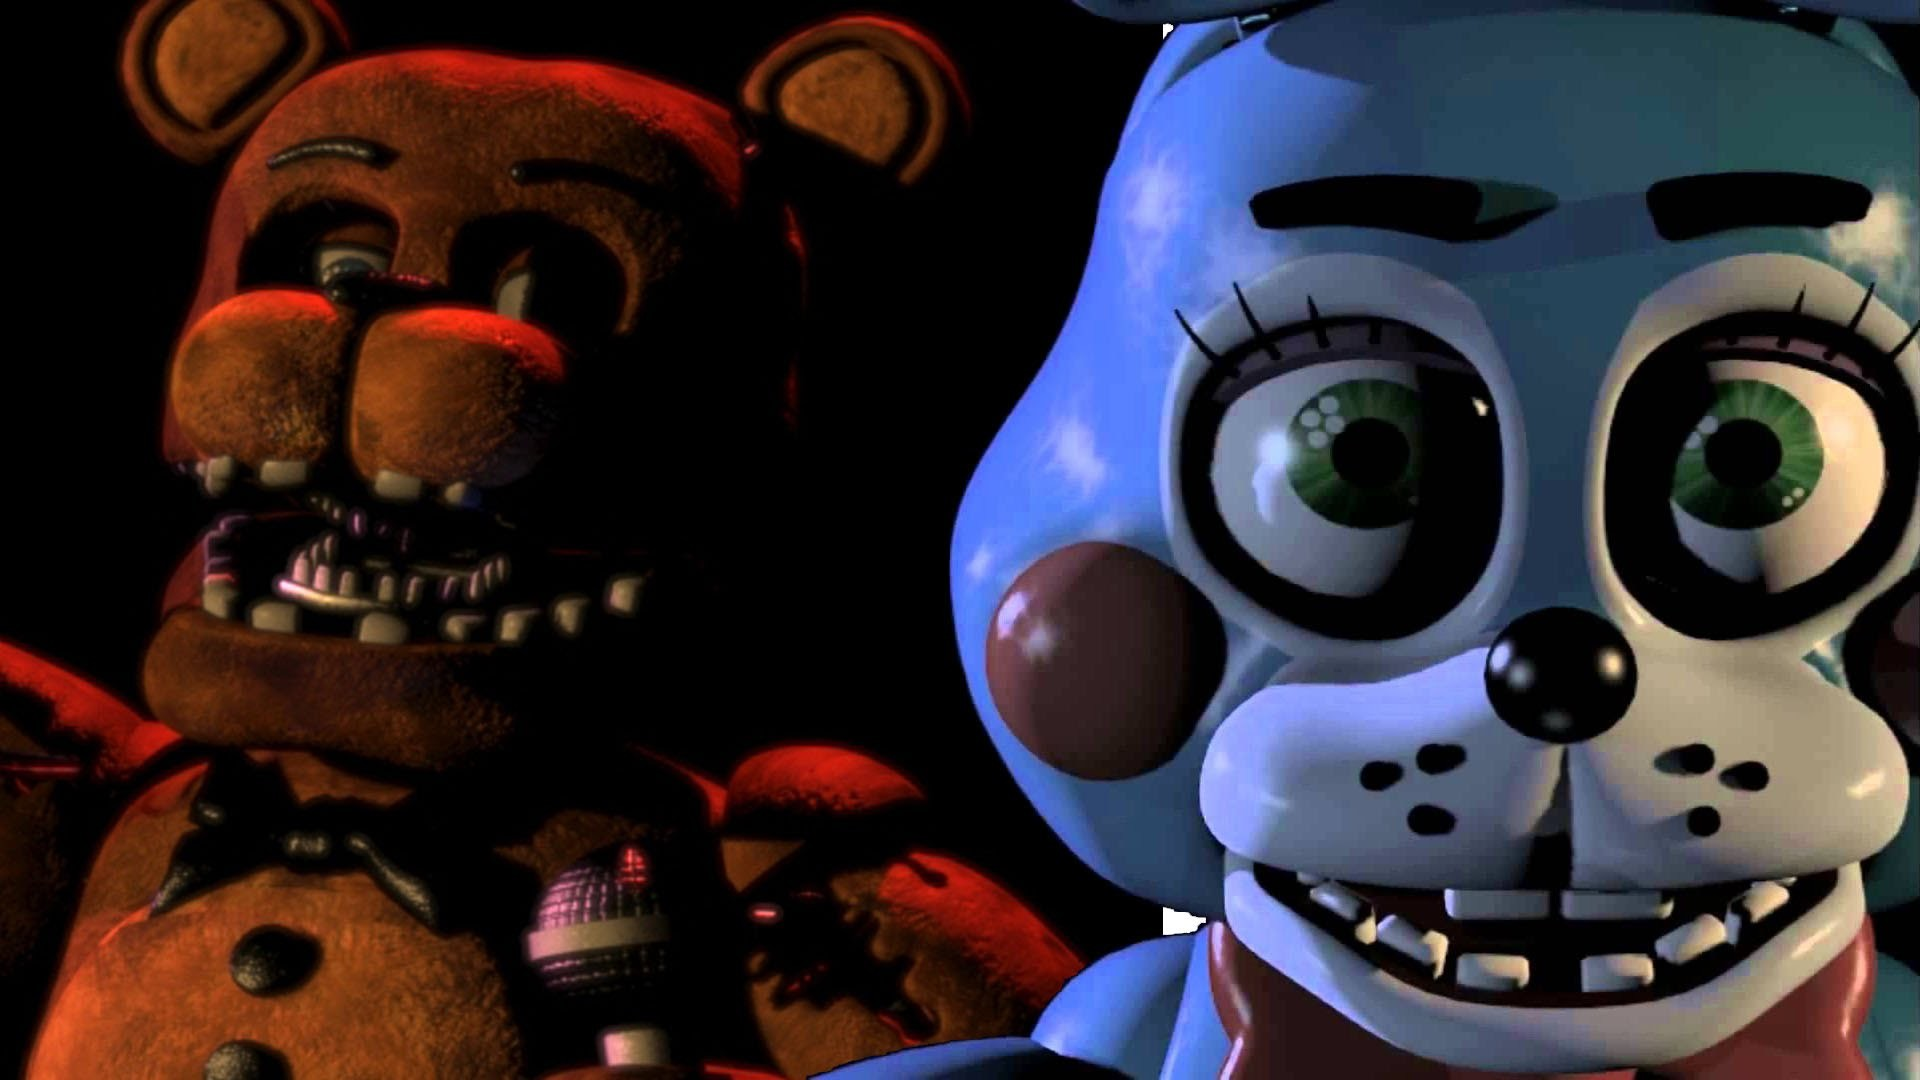 FIVE NIGHTS AT FREDDY'S 2   Top 5 Reactions HD (PewDiePie, Markiplier,  Jacksepticeye and more!) – YouTube